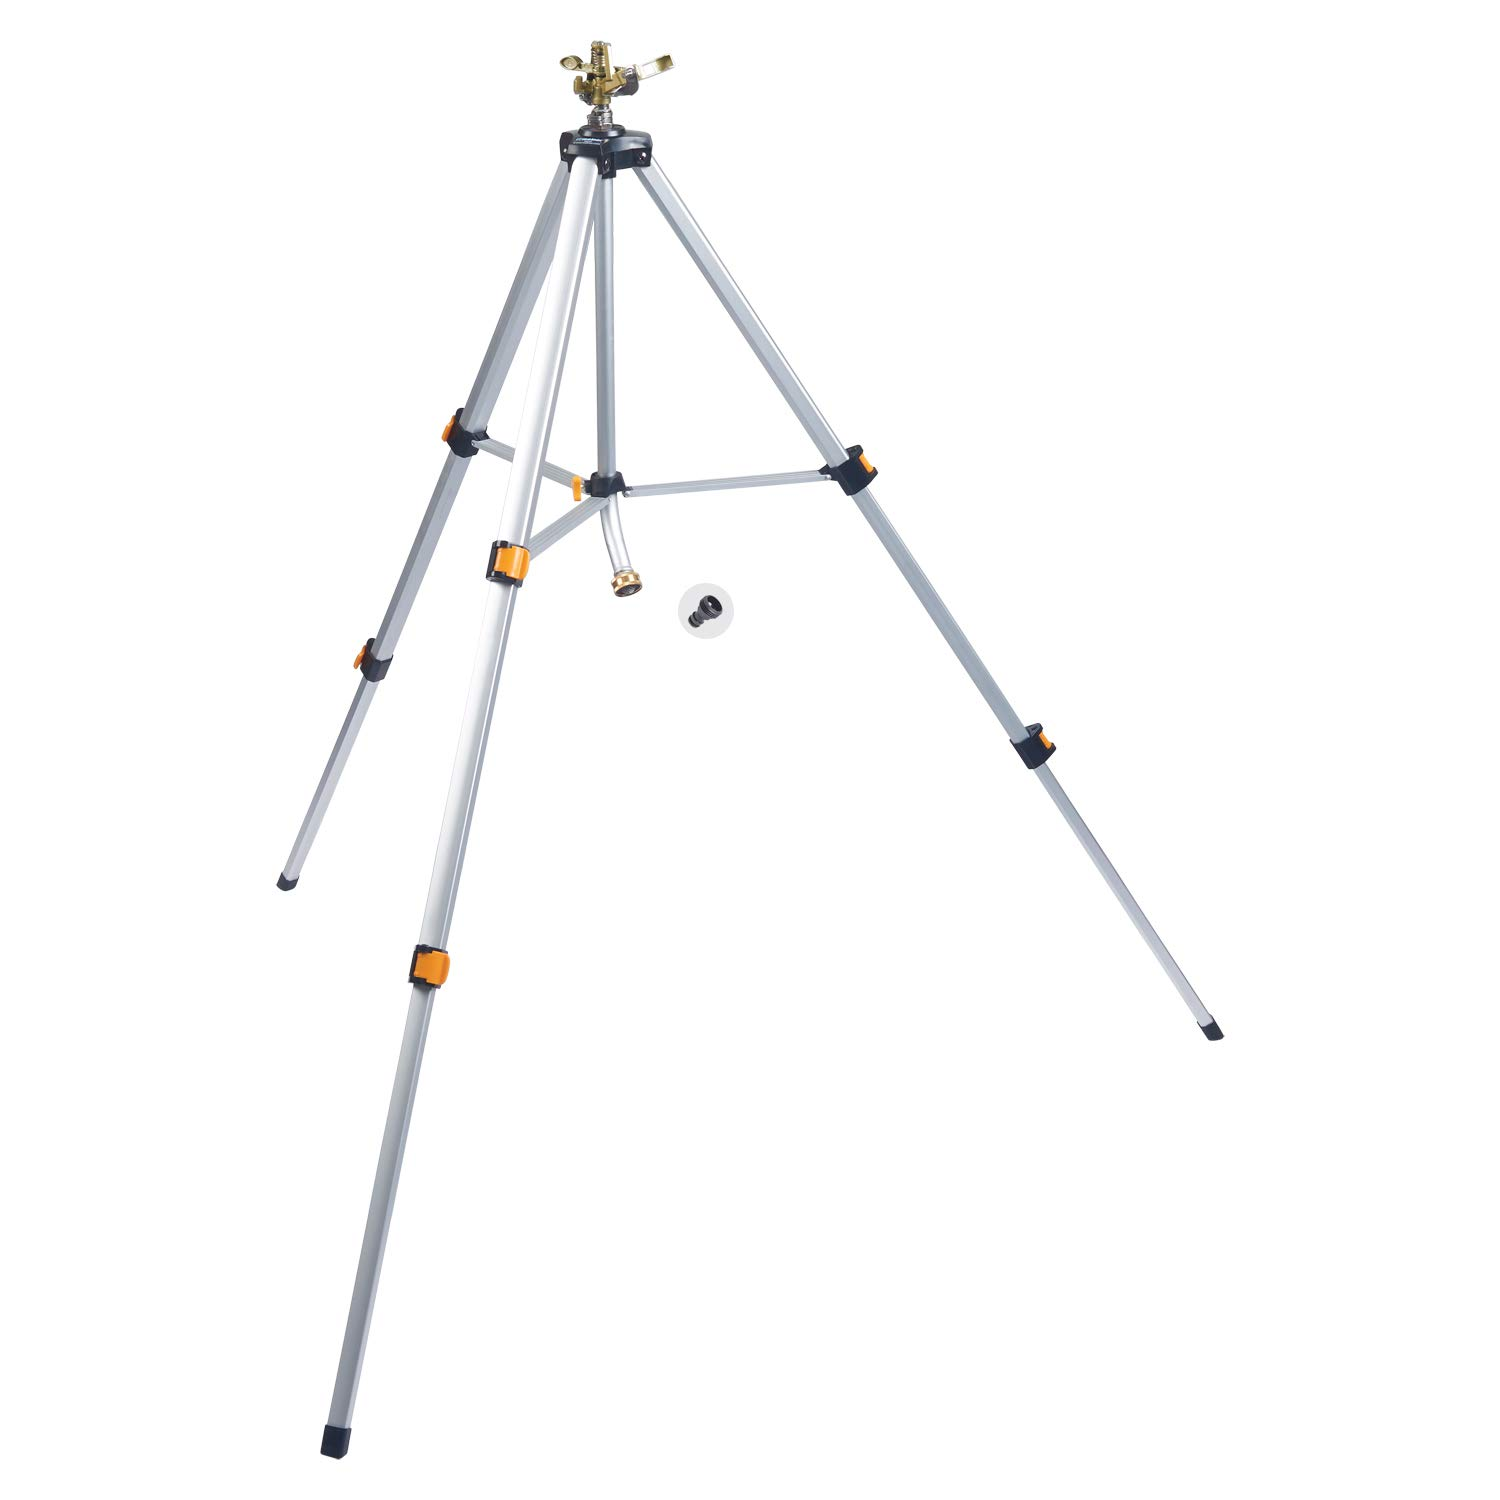 Melnor 65066-AMZ Metal Pulsating Sprinkler with Tripod and QuickConnect Product Adapter Set, Silver